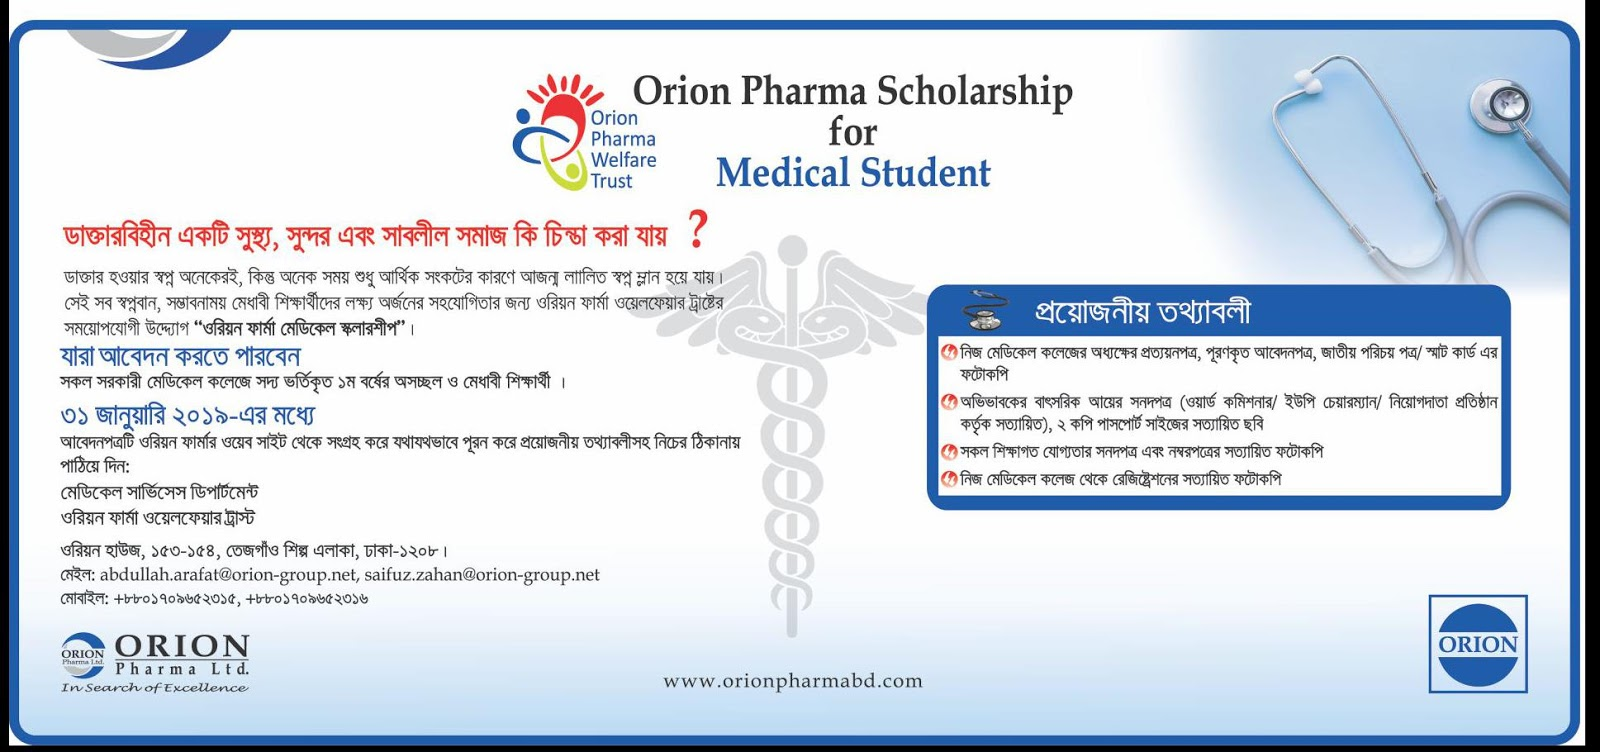 Orion Pharma Ltd. Scholarship 2018